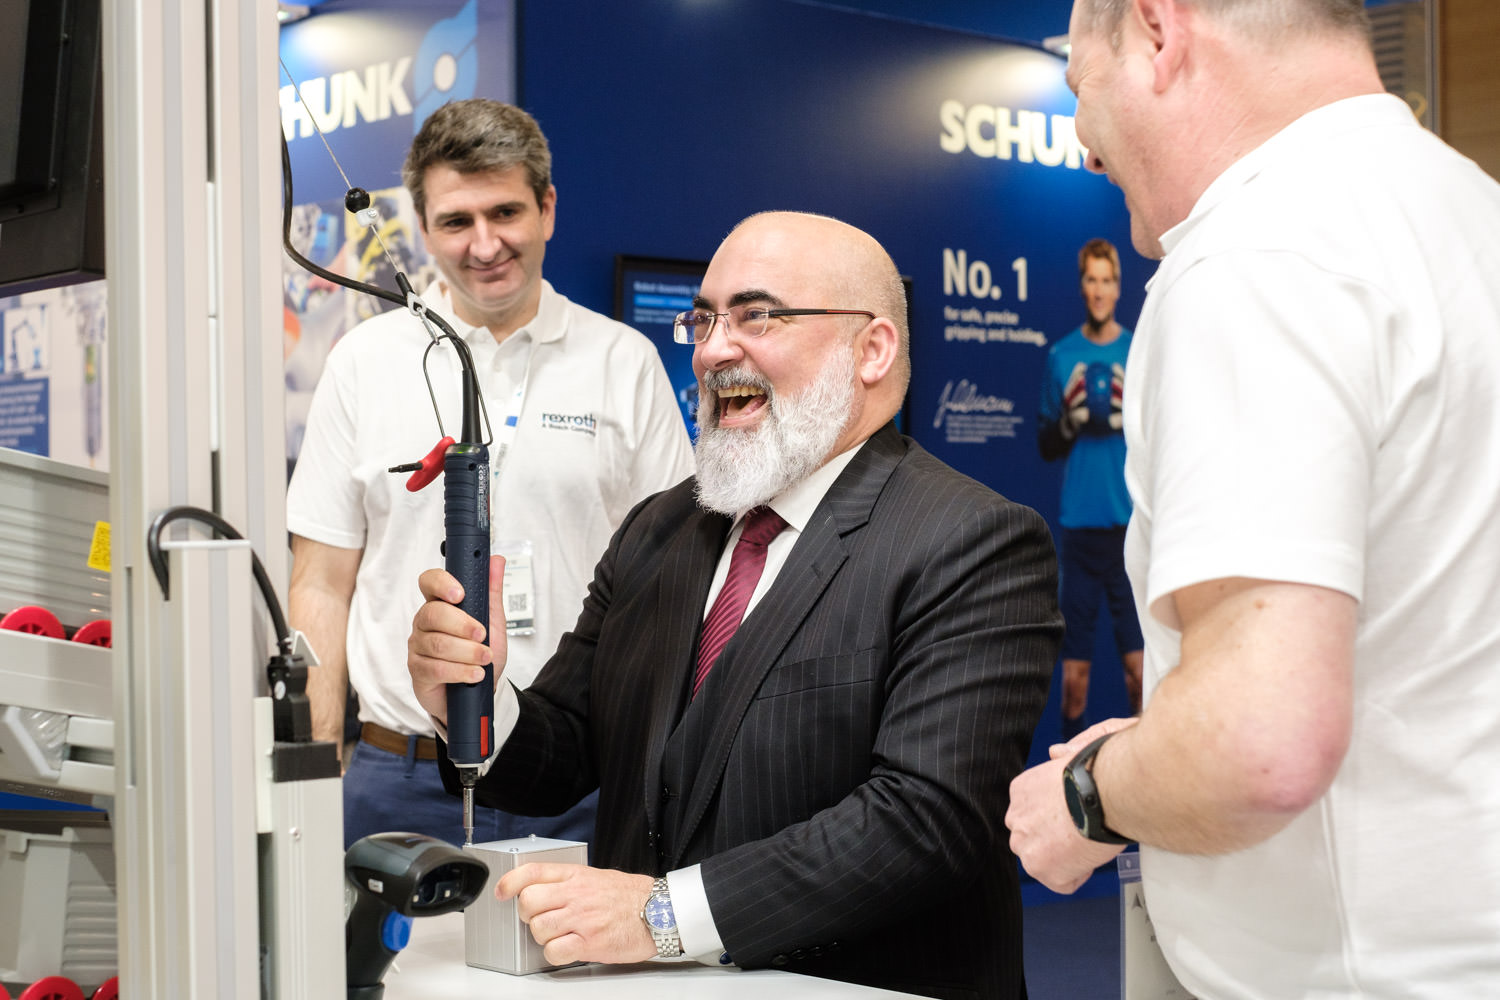 A photograph of Javier Garcia (general director of SCHUNK) at the advanced factories event in Barcelona, Spain.